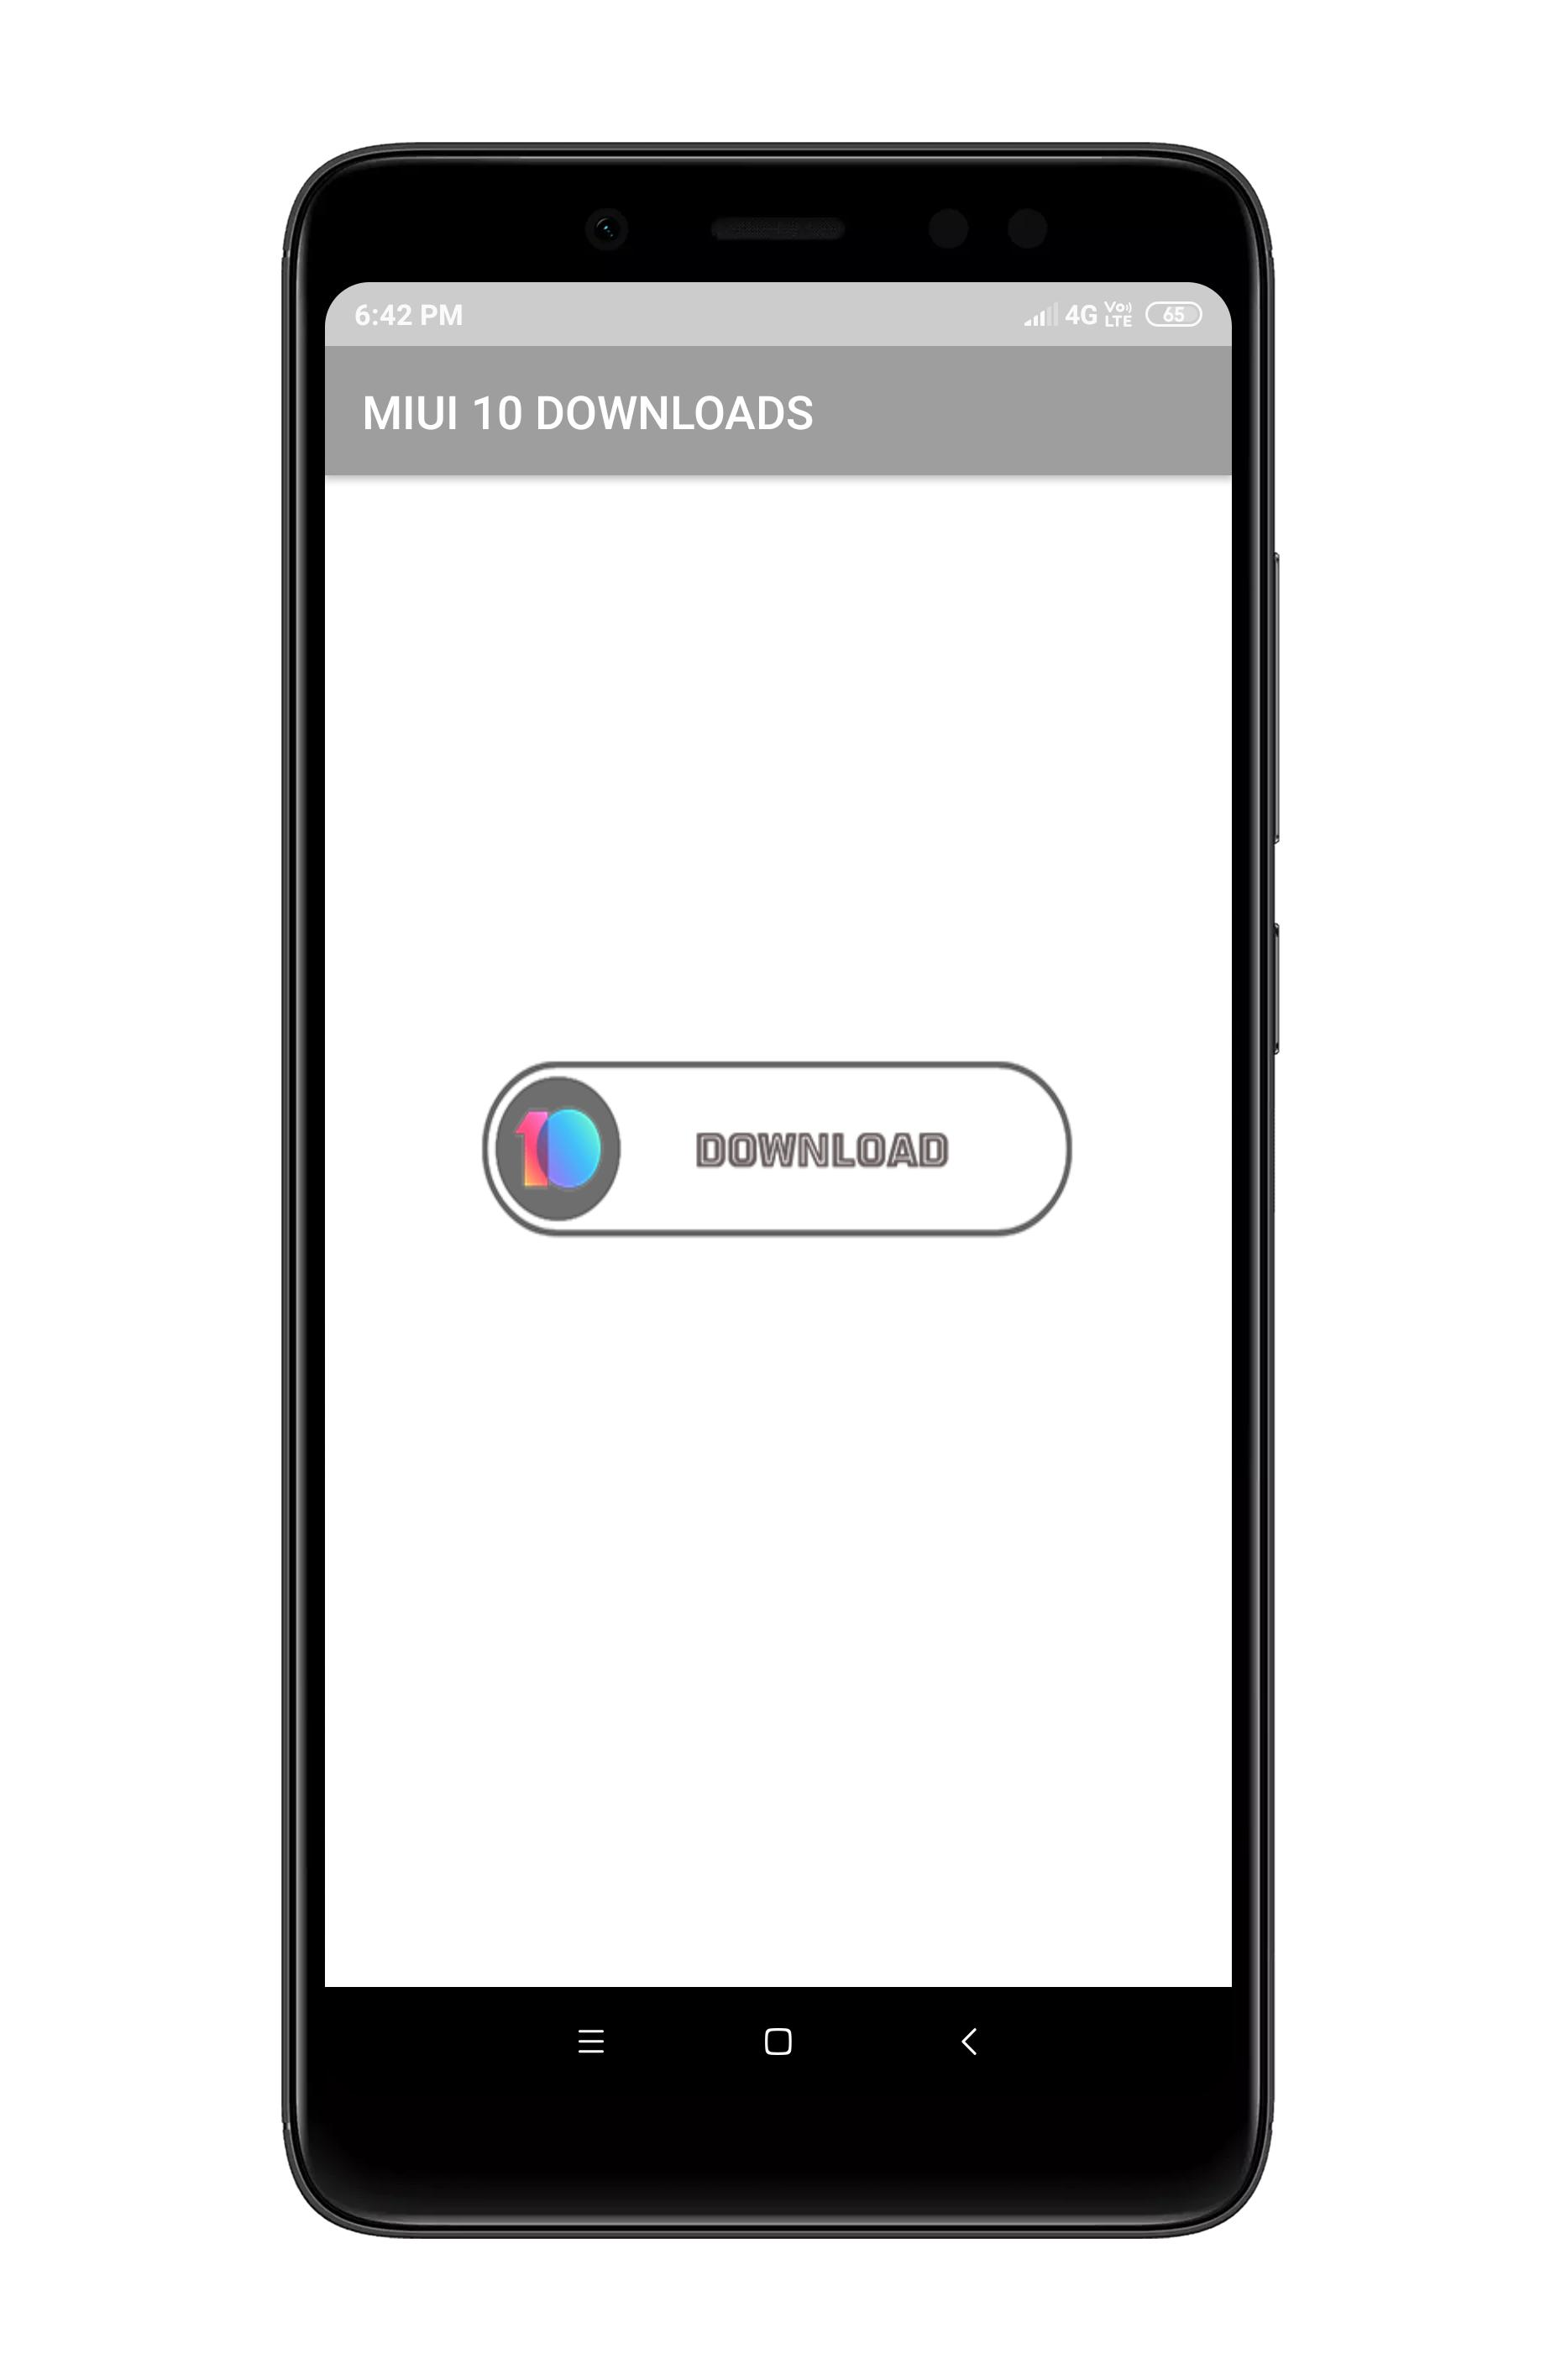 MIUI 10 DOWNLOADS for Android - APK Download